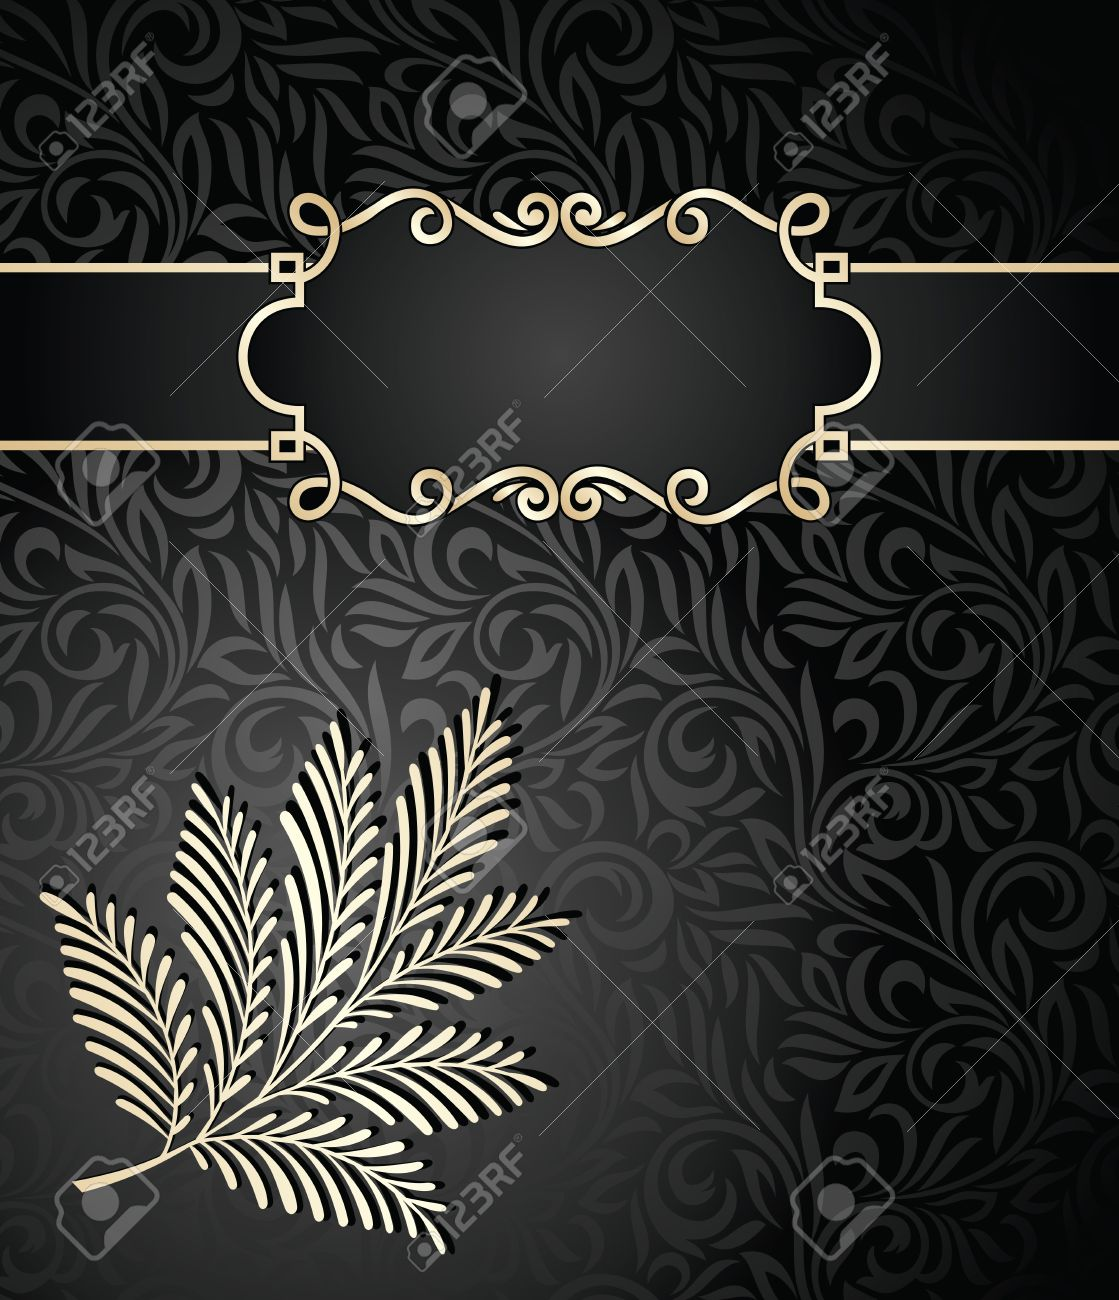 Book Cover Wallpaper